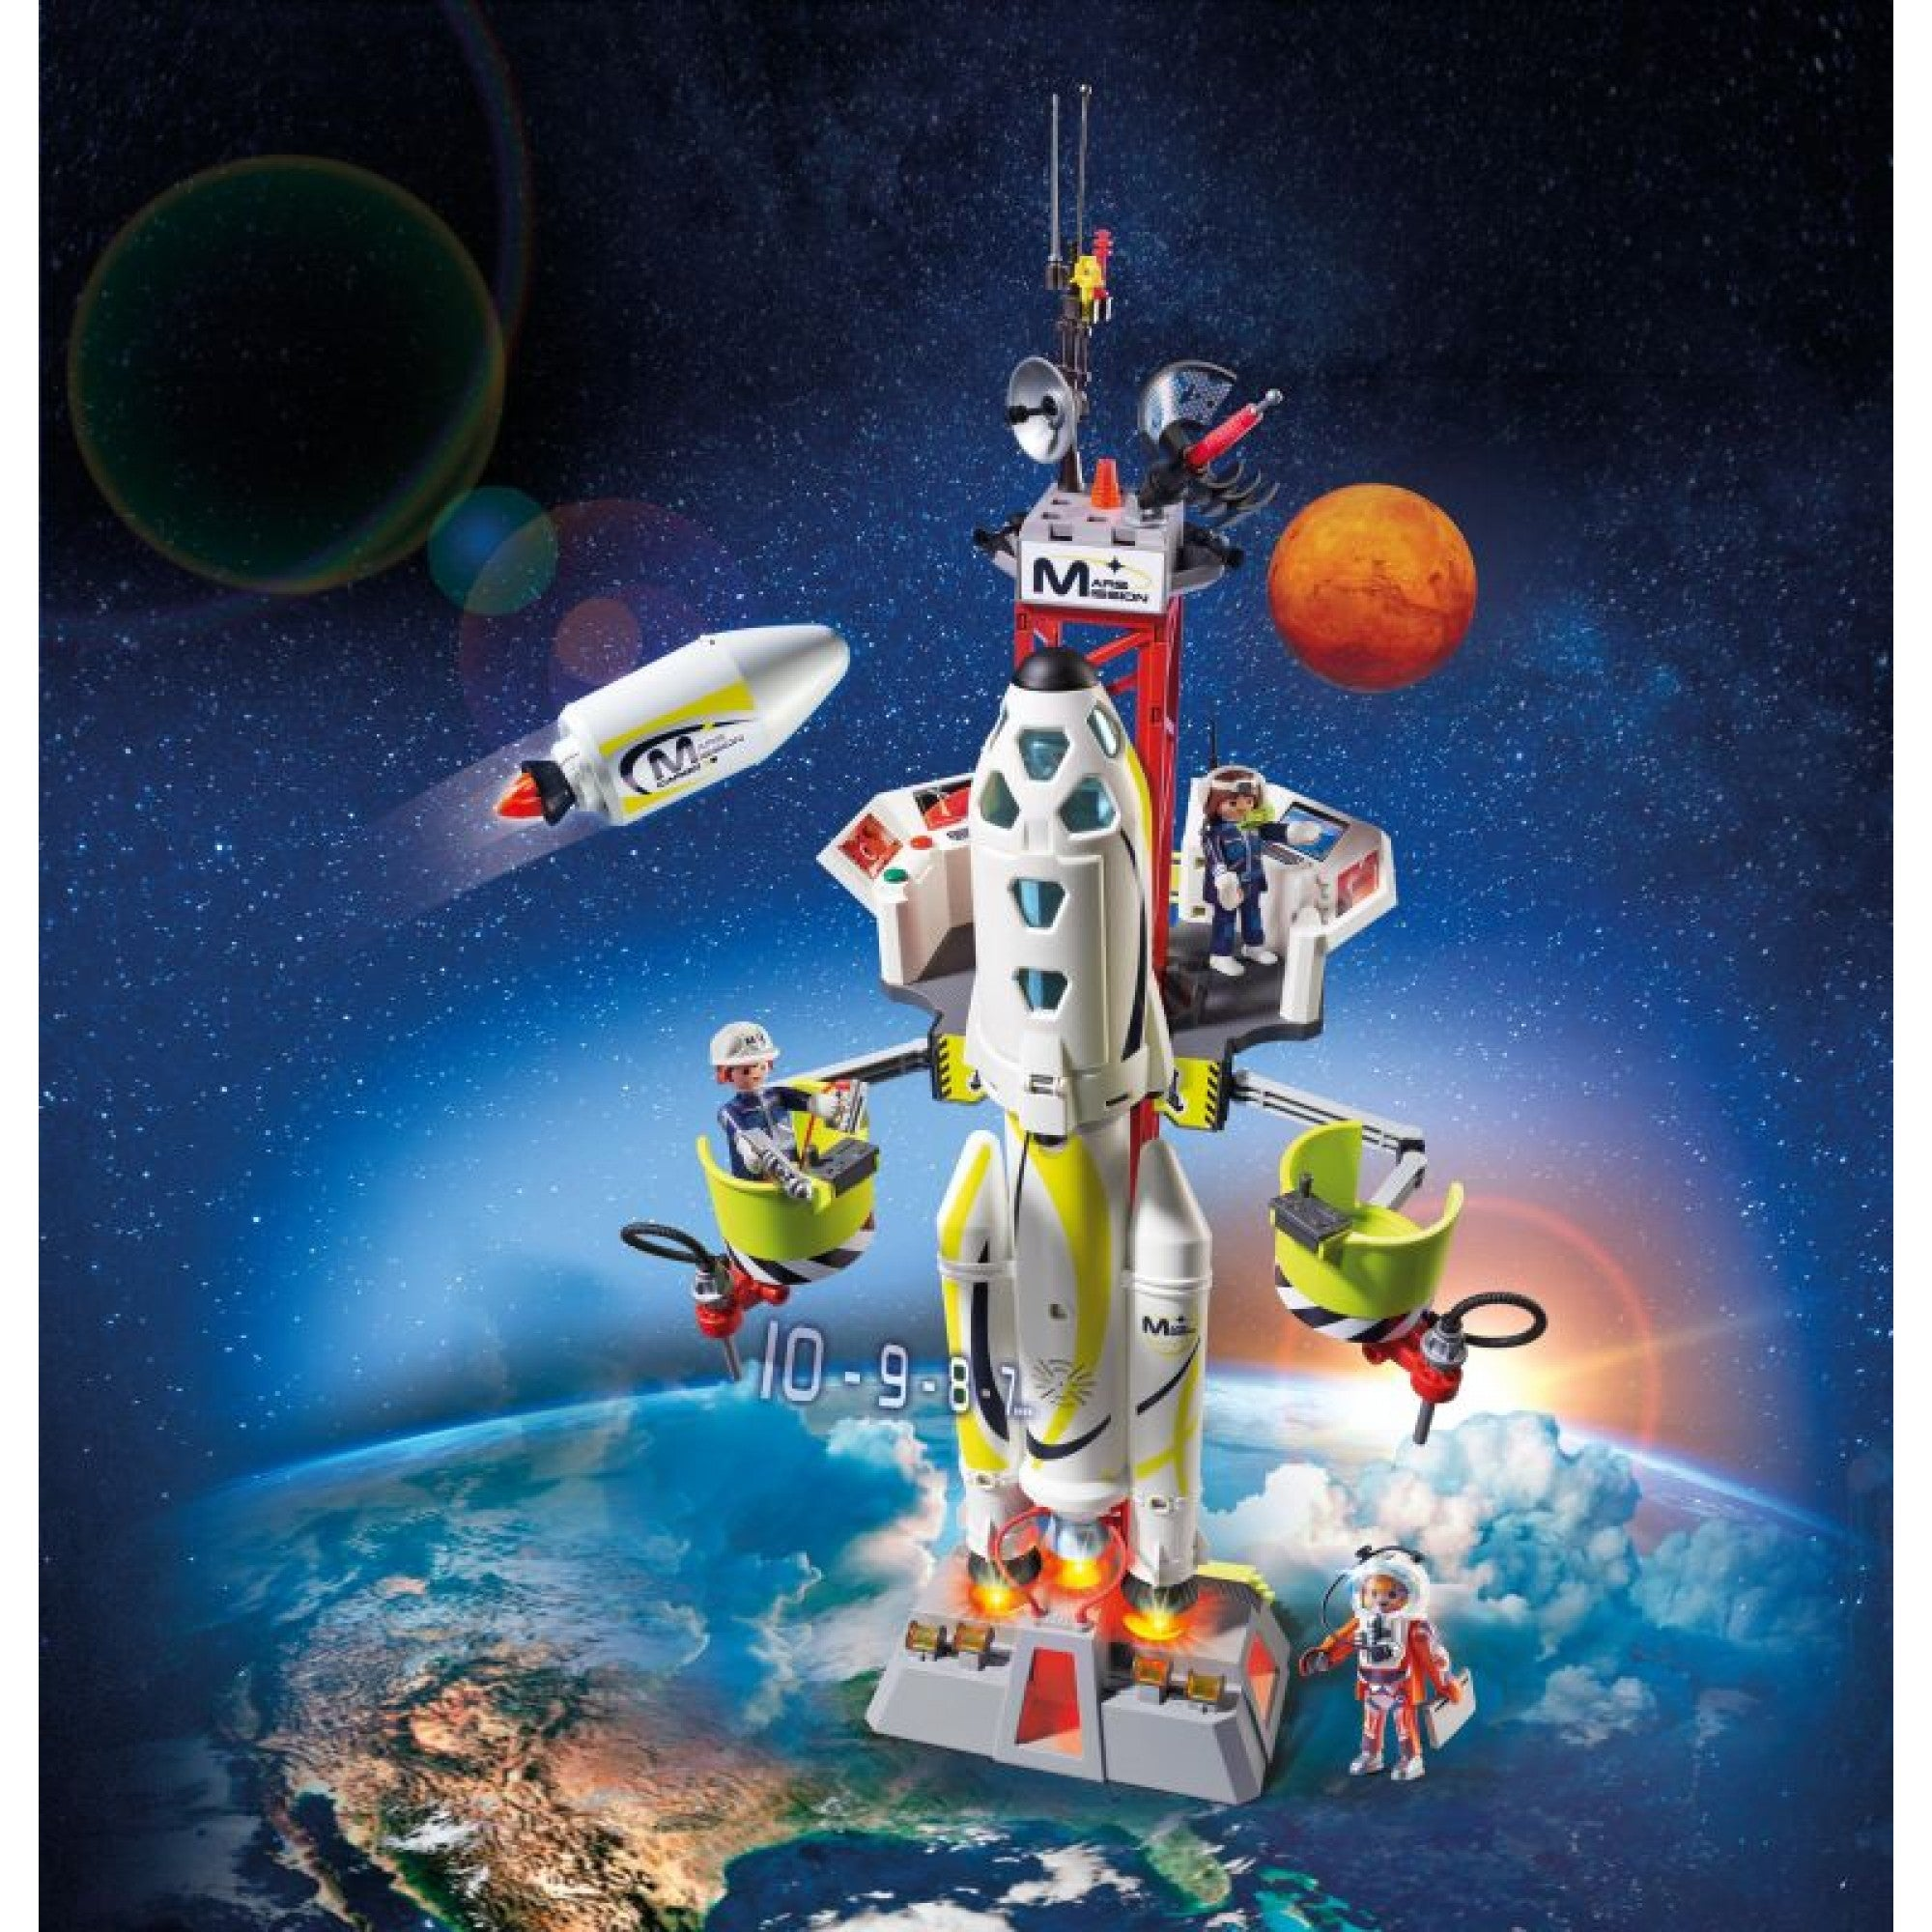 Mars Mission Rocket with Launch Site - Playmobil